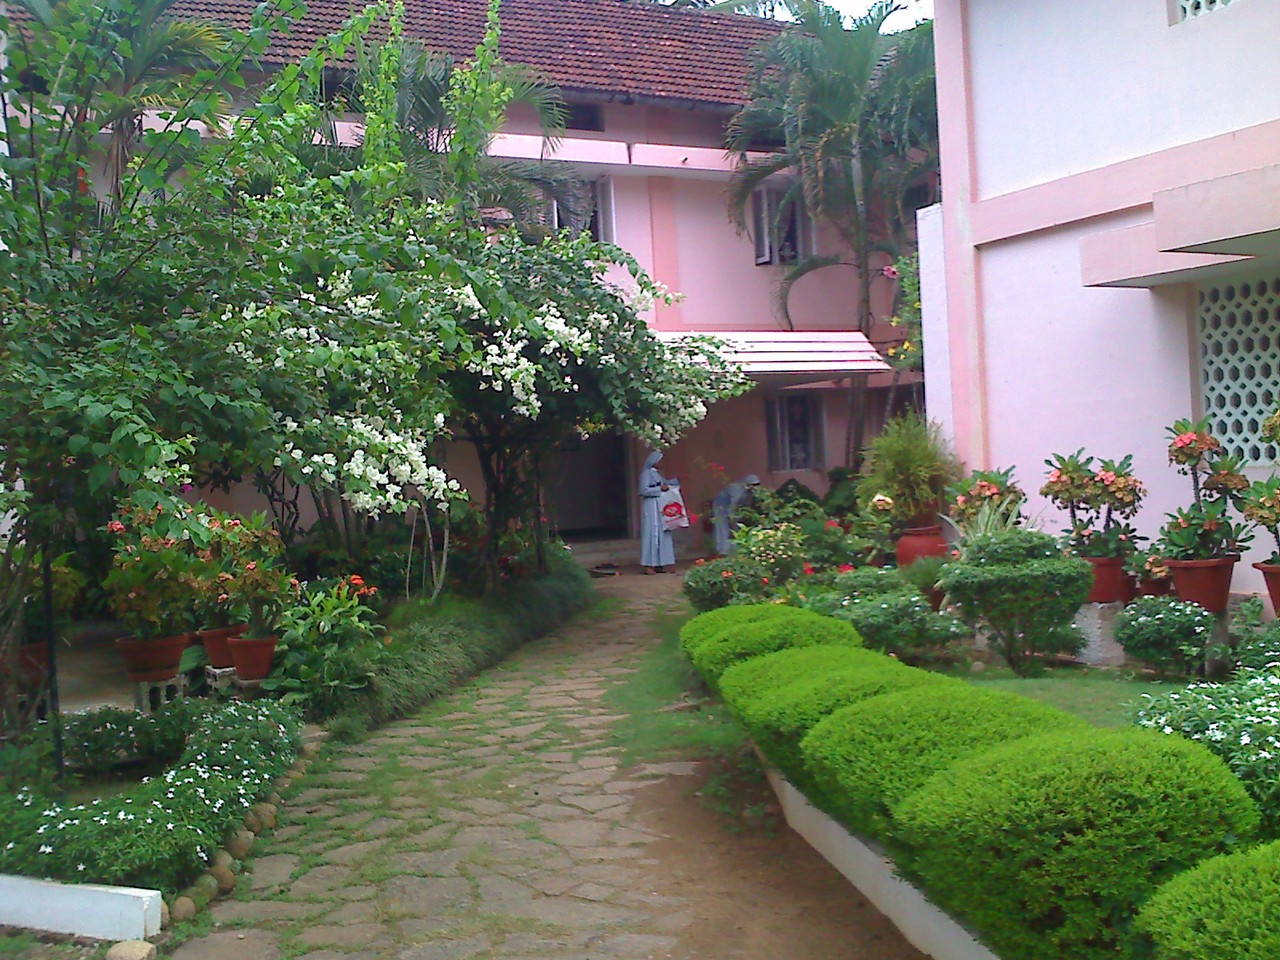 Casa a Mundamveli (Kerala, India)